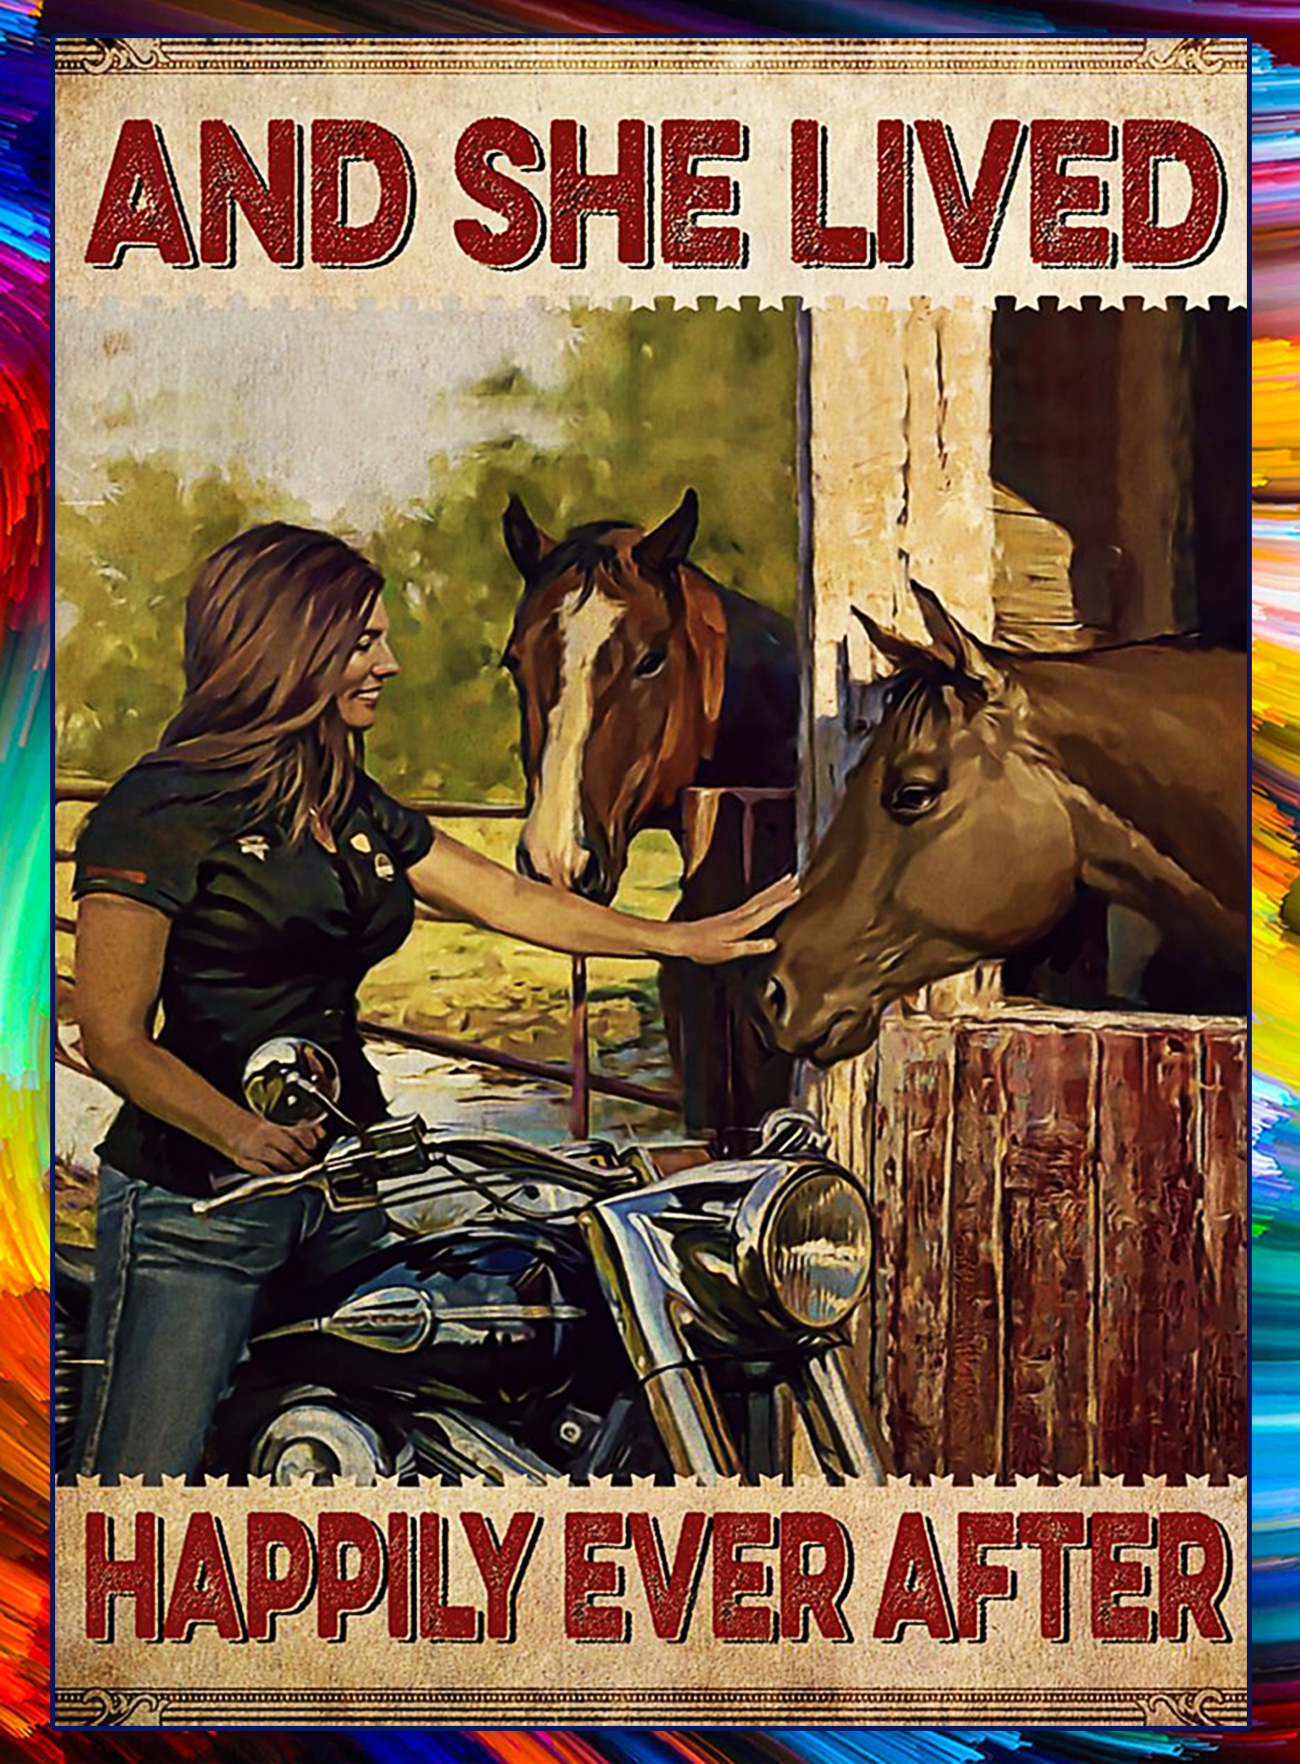 Biker horse and she lived happily ever after poster - A1